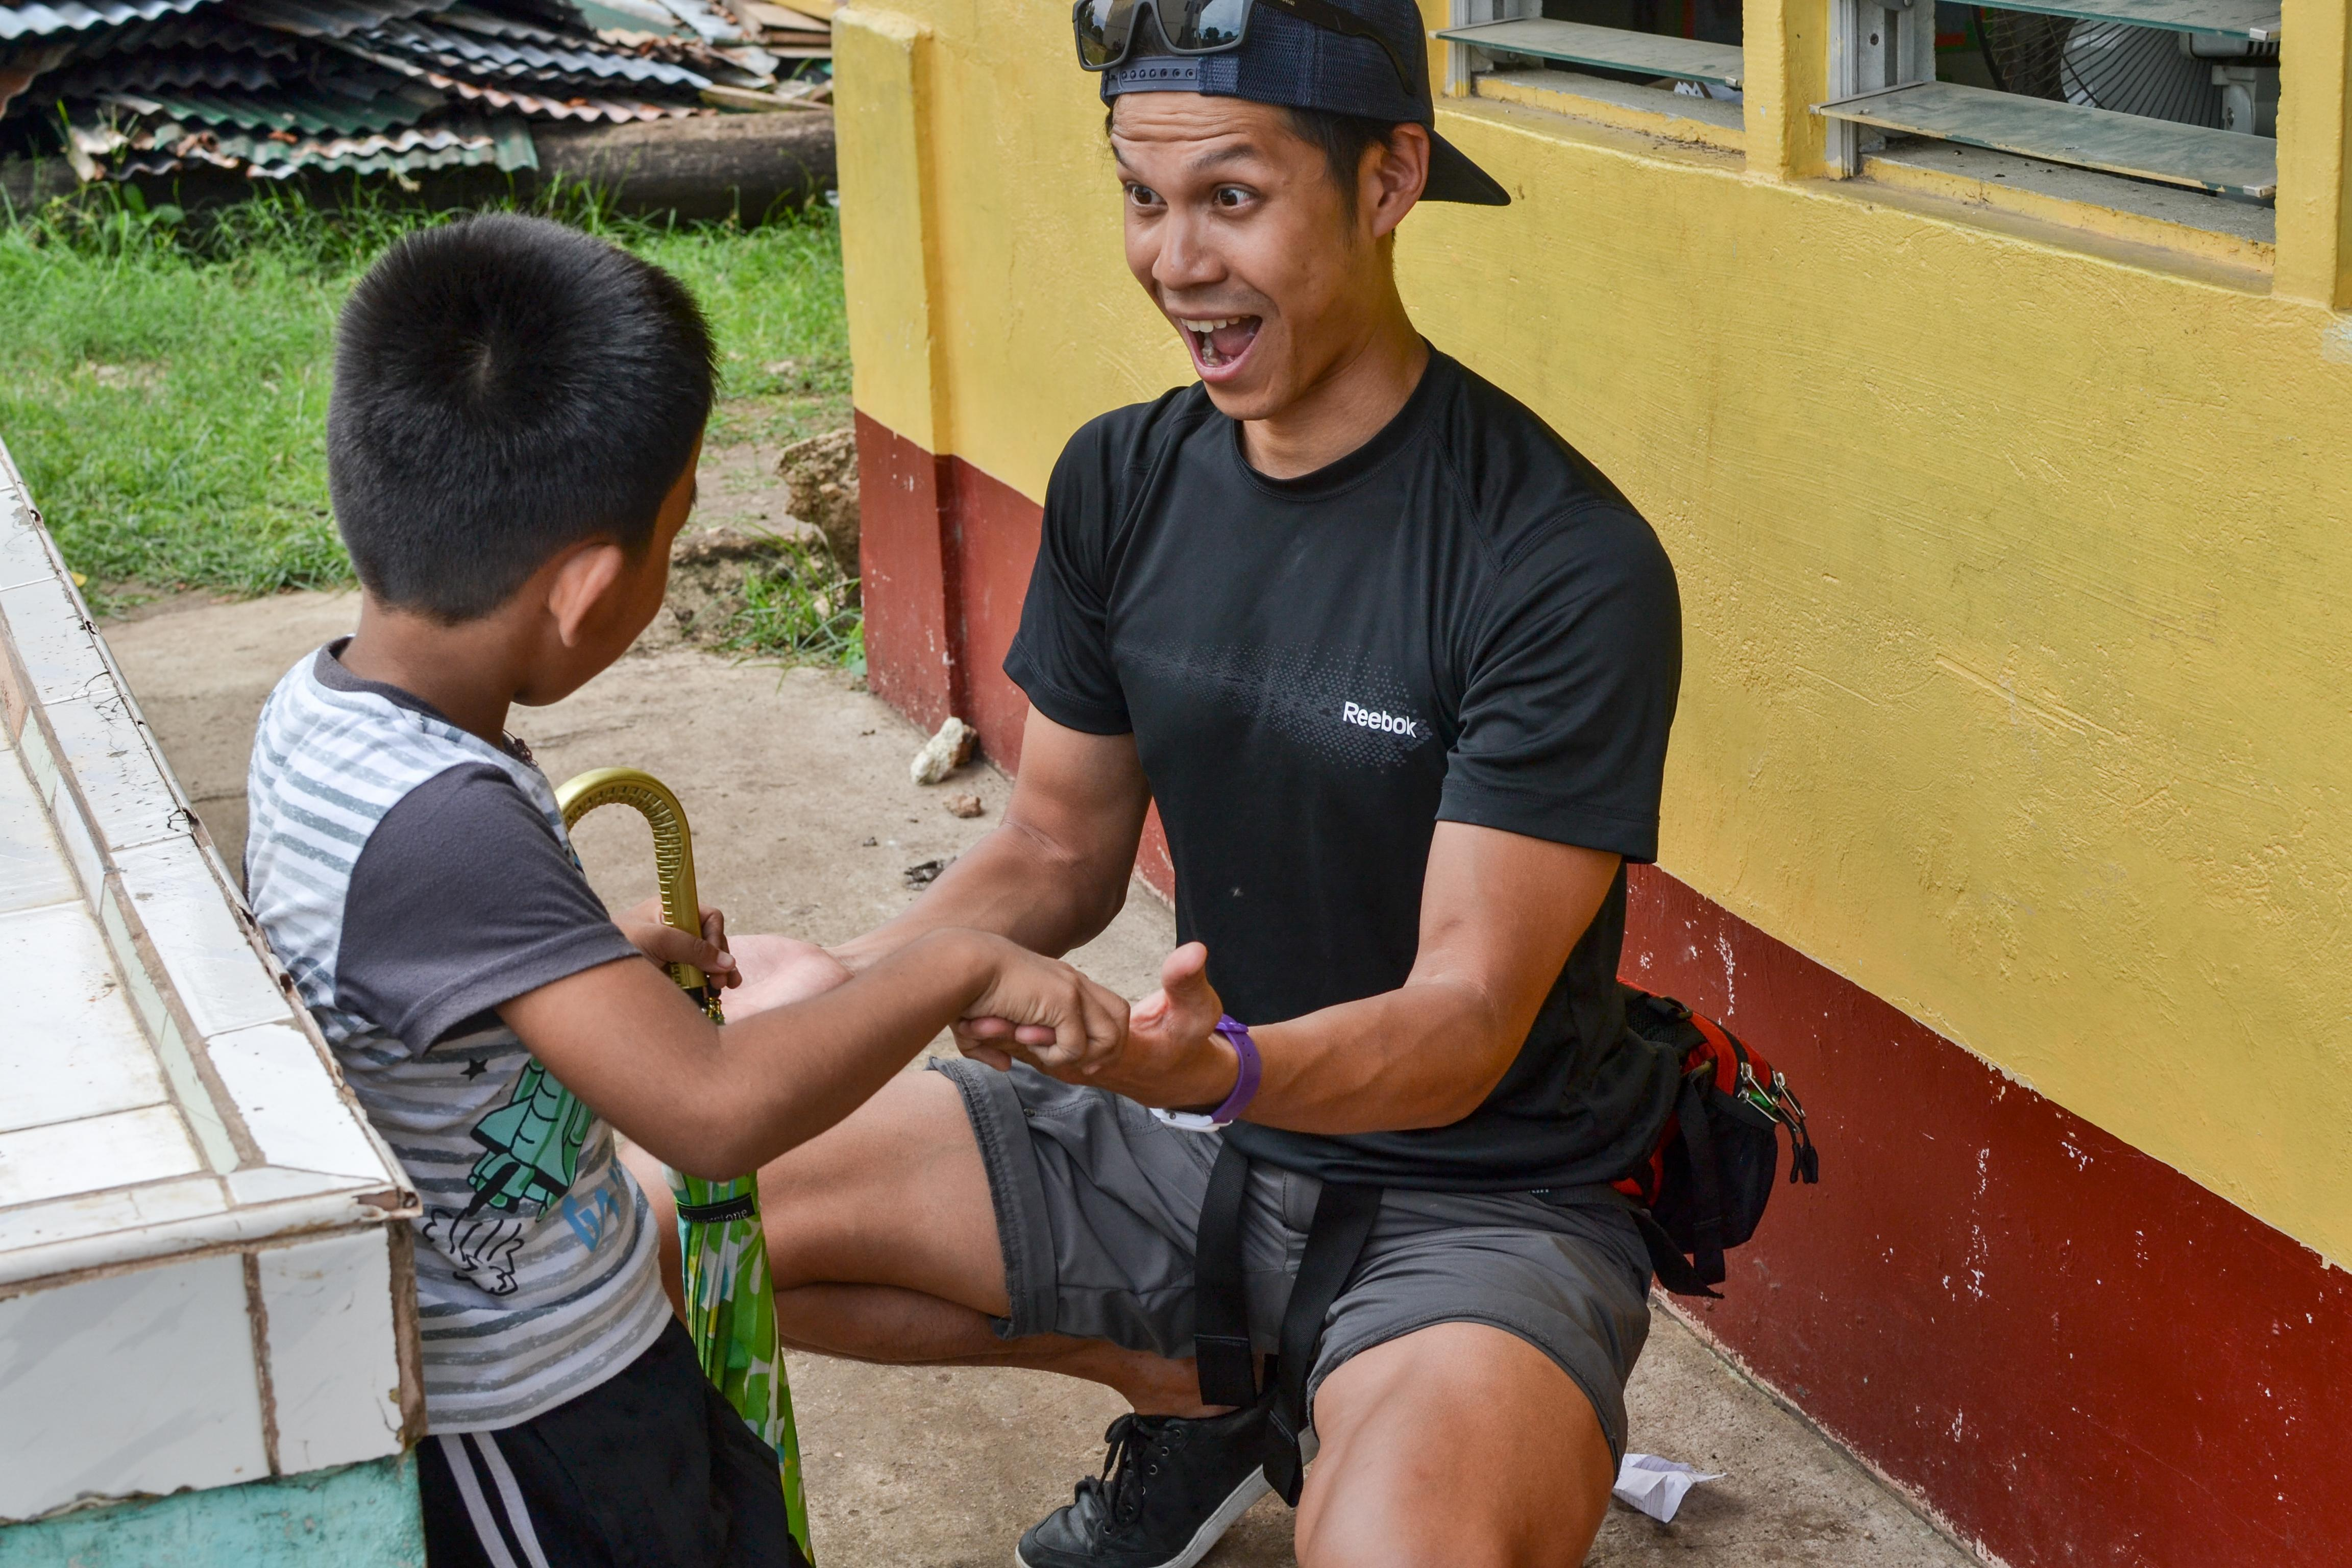 A child is treated at home by a student doing a Physiotherapy internship abroad in the Philippines.